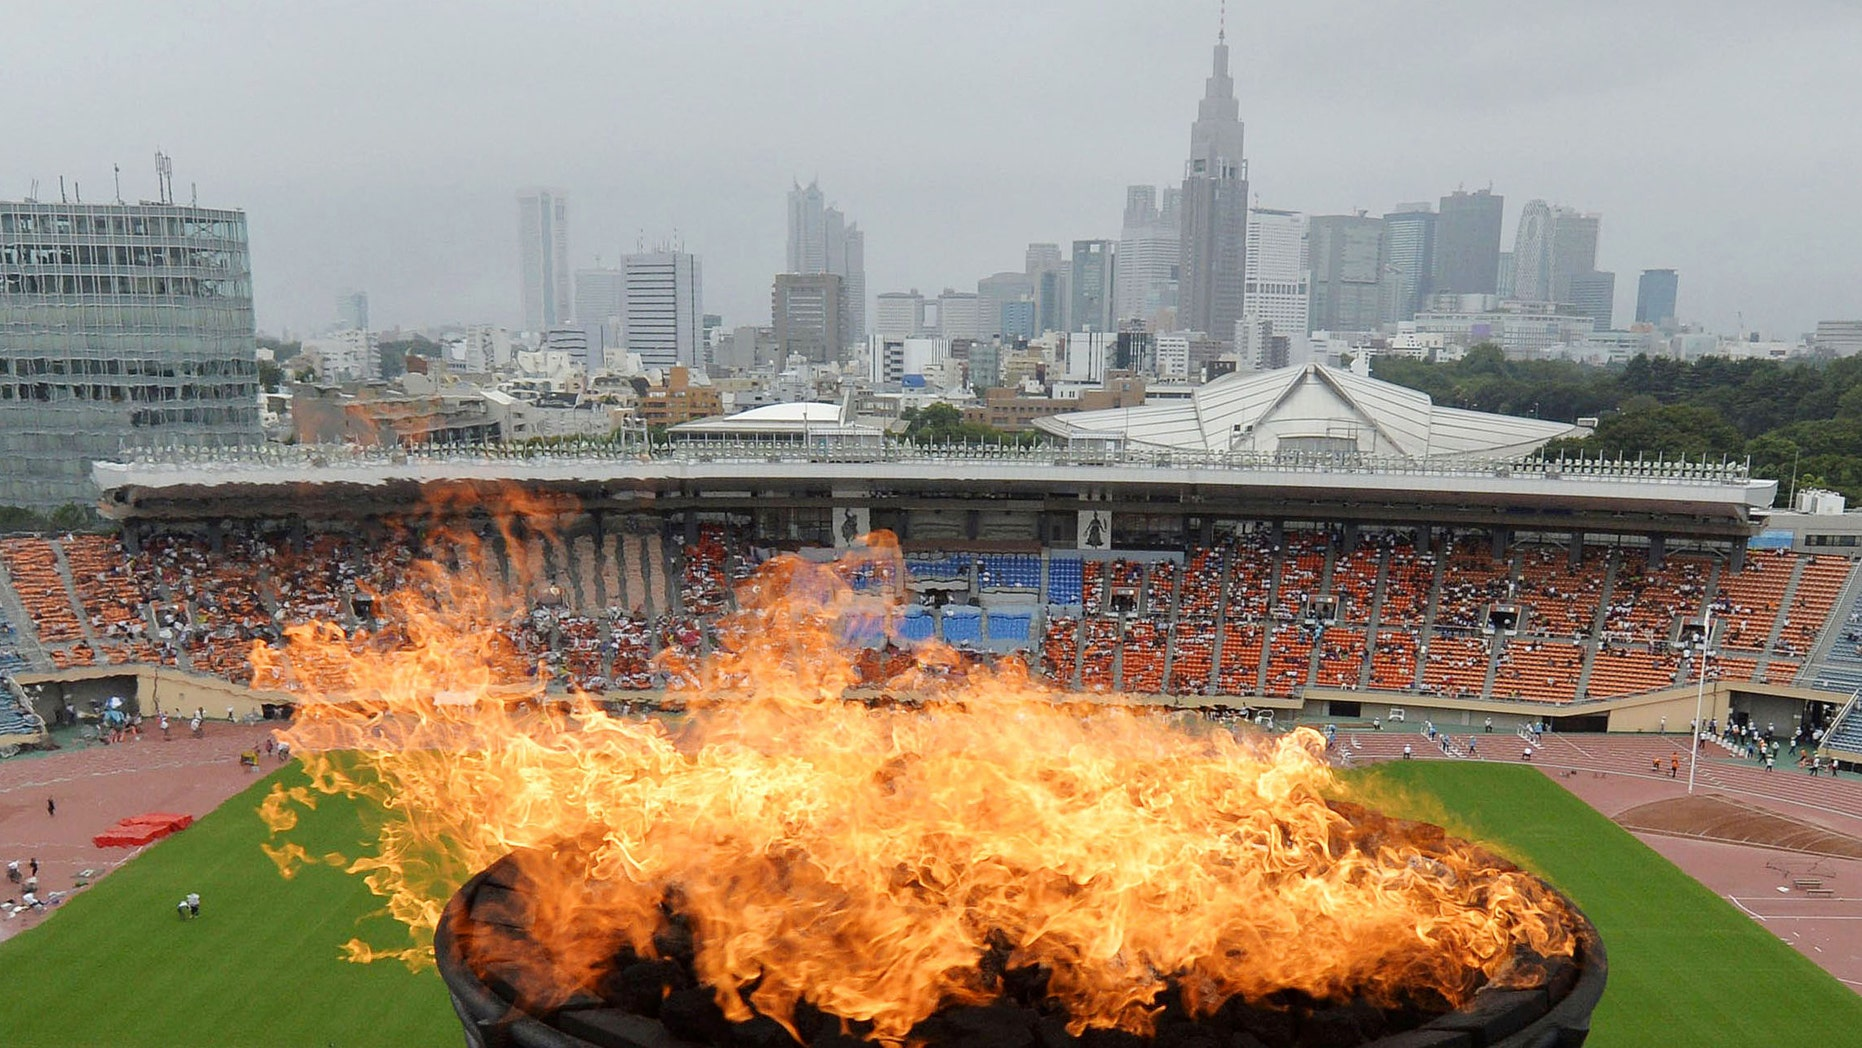 A flame is ignited at the Olympic cauldron at National Stadium in Tokyo to celebrate the city's successful bid to host the 2020 Olympics, Sunday, Sept. 8, 2013.  (AP Photo/Kyodo News)